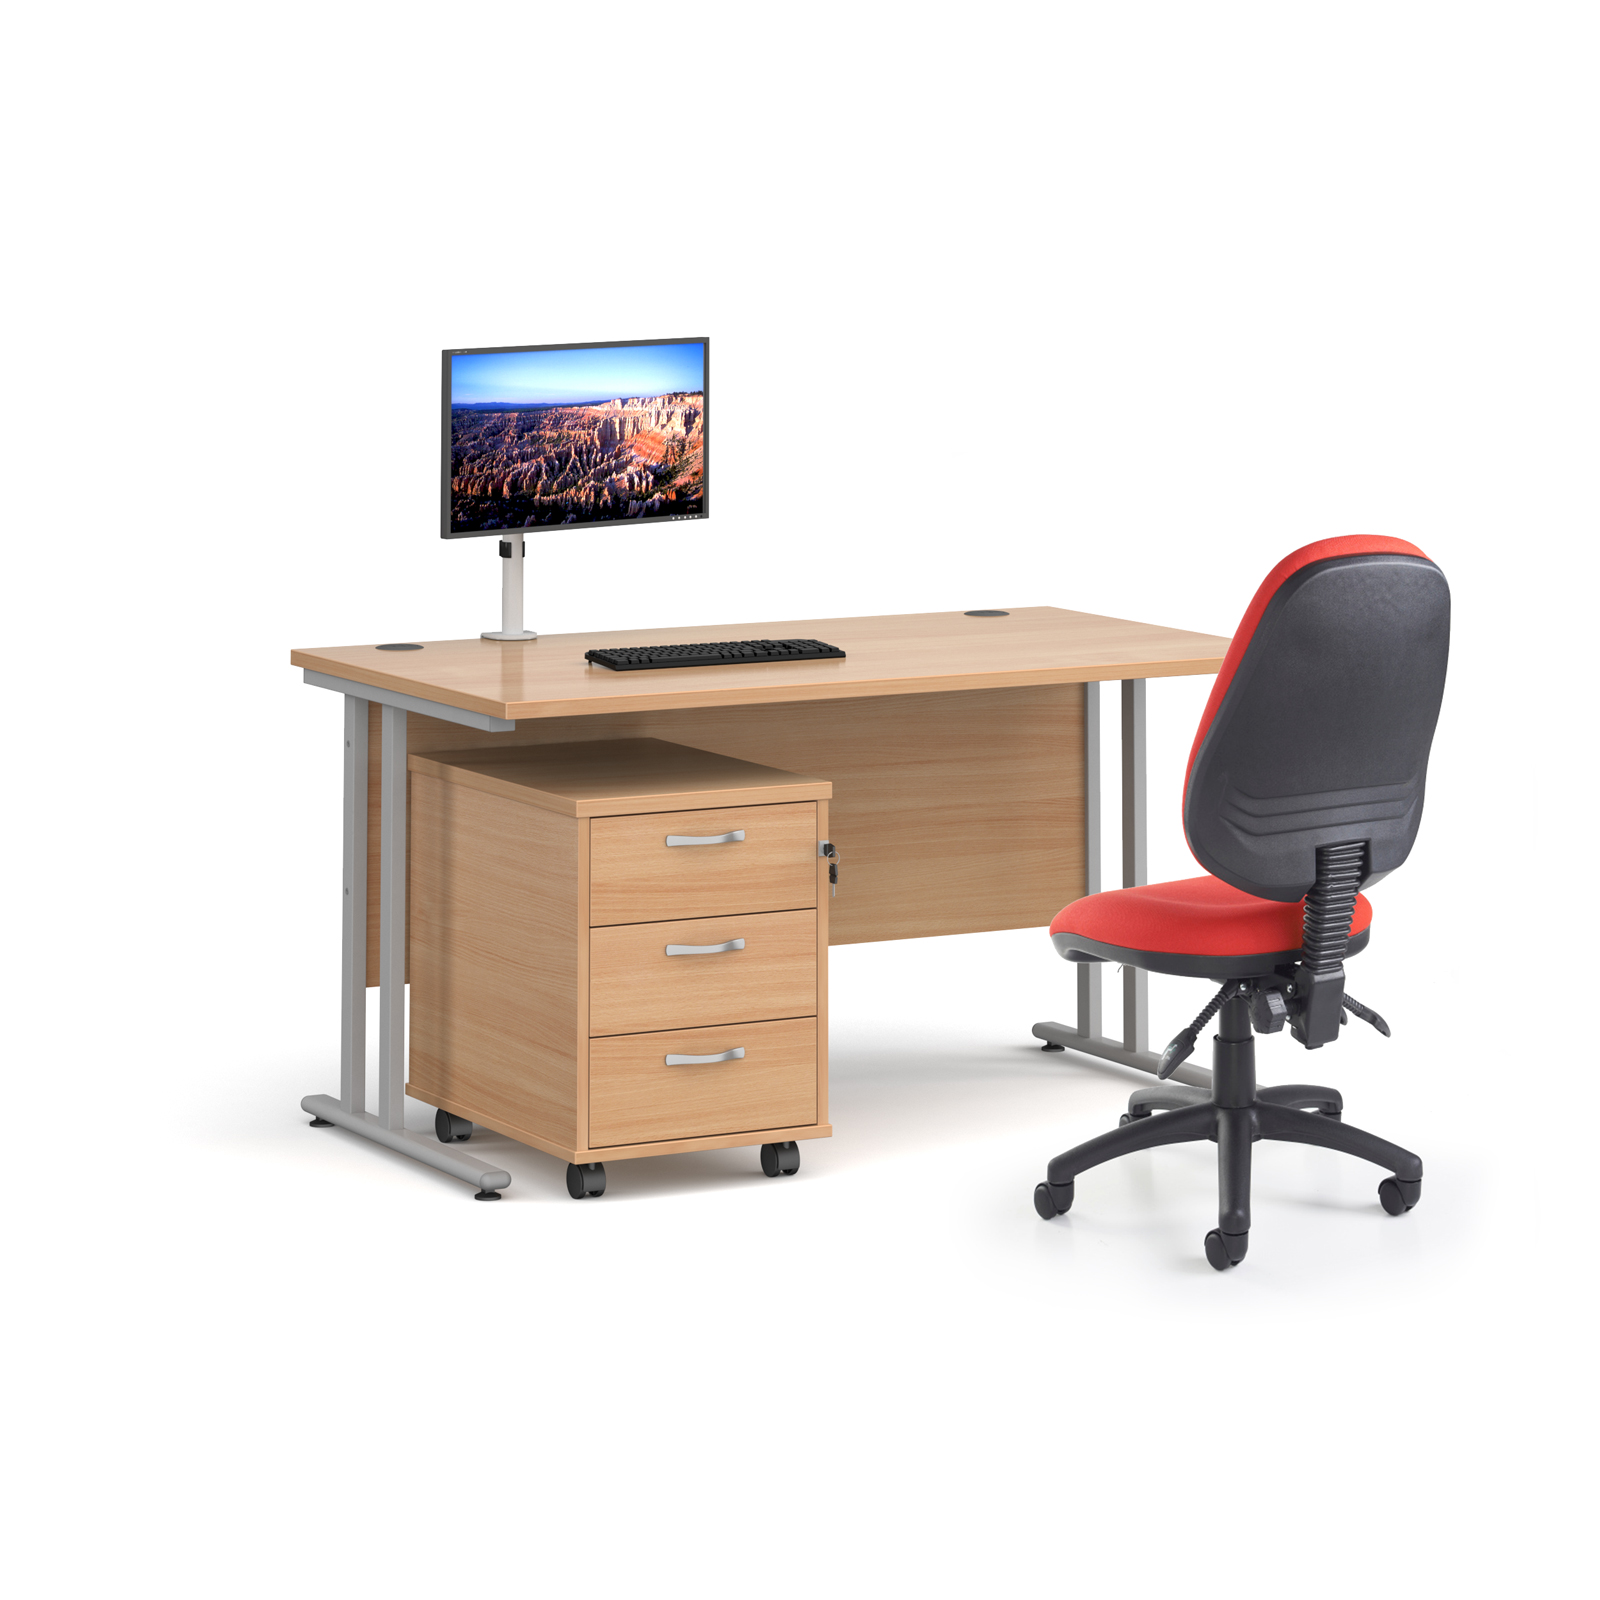 Bundles Bundle deal - Maestro 25 straight 1400mm desk in beech with silver frame, 3 drawer pedestal, Luna silver monitor arm and Vantage V100 chair in blue